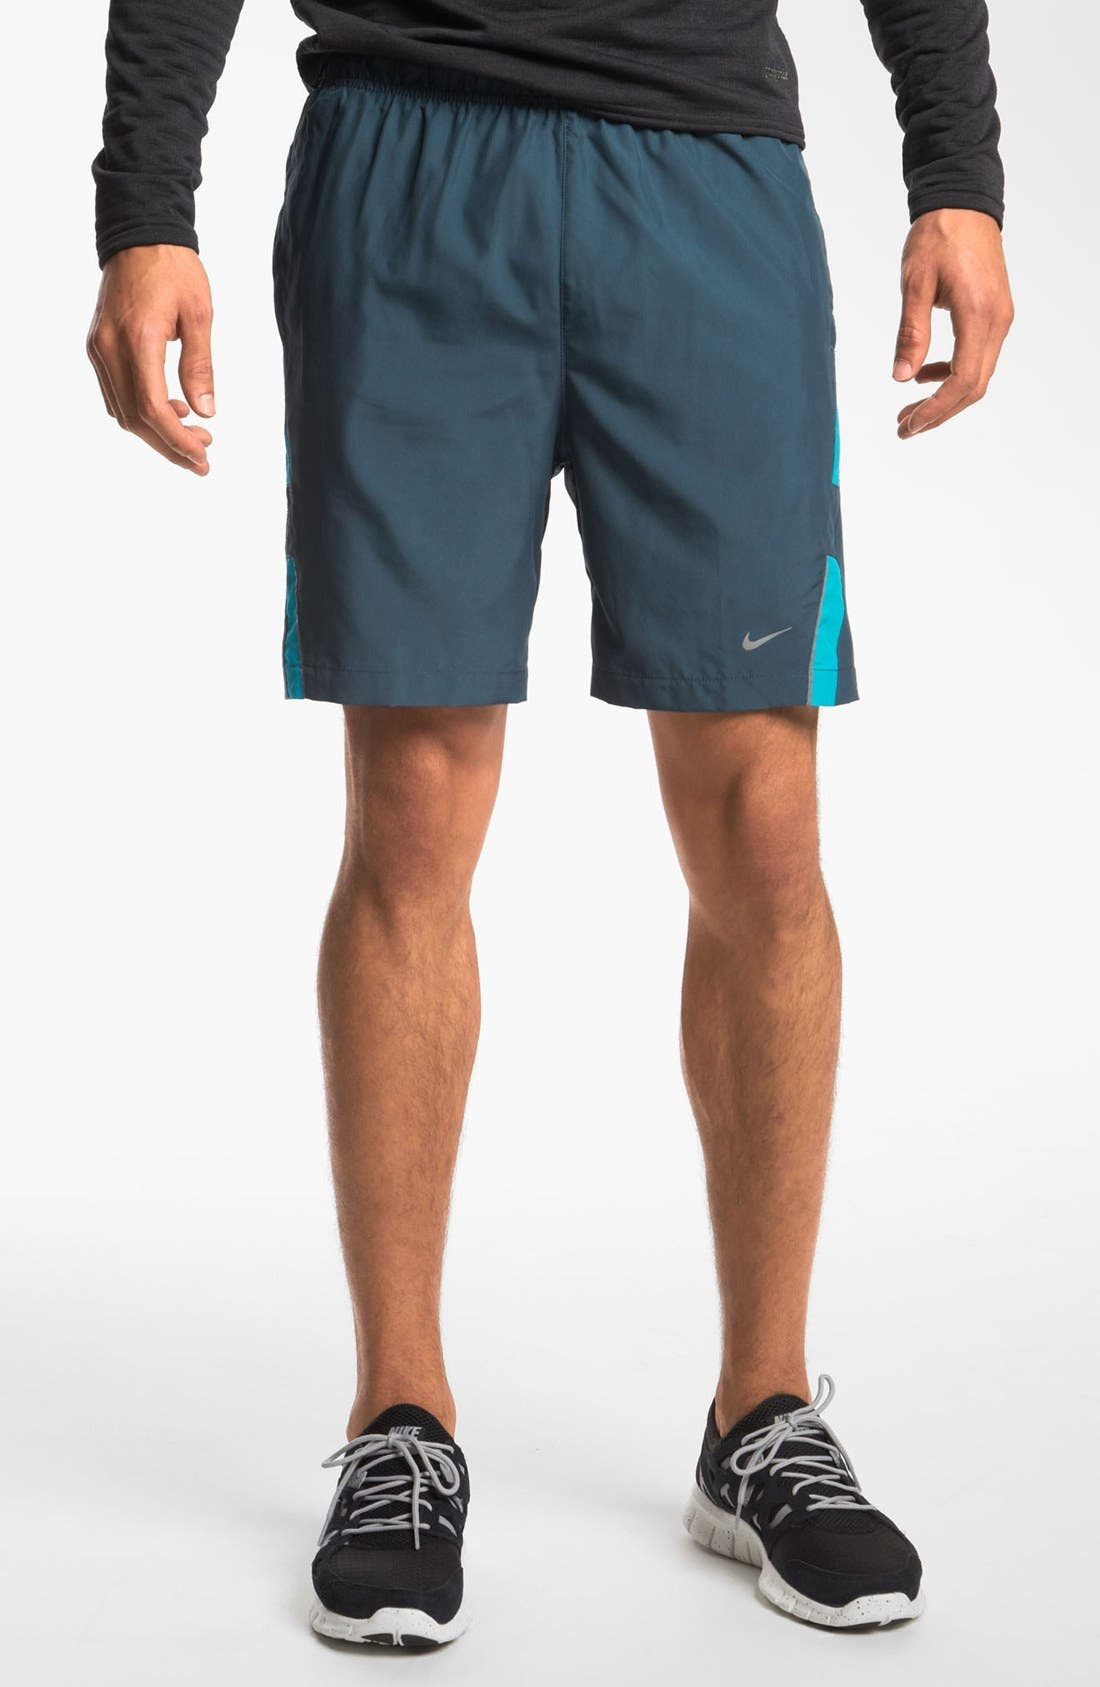 Alternate Image 1 Selected - Nike 'Essential' DriFIT Shorts